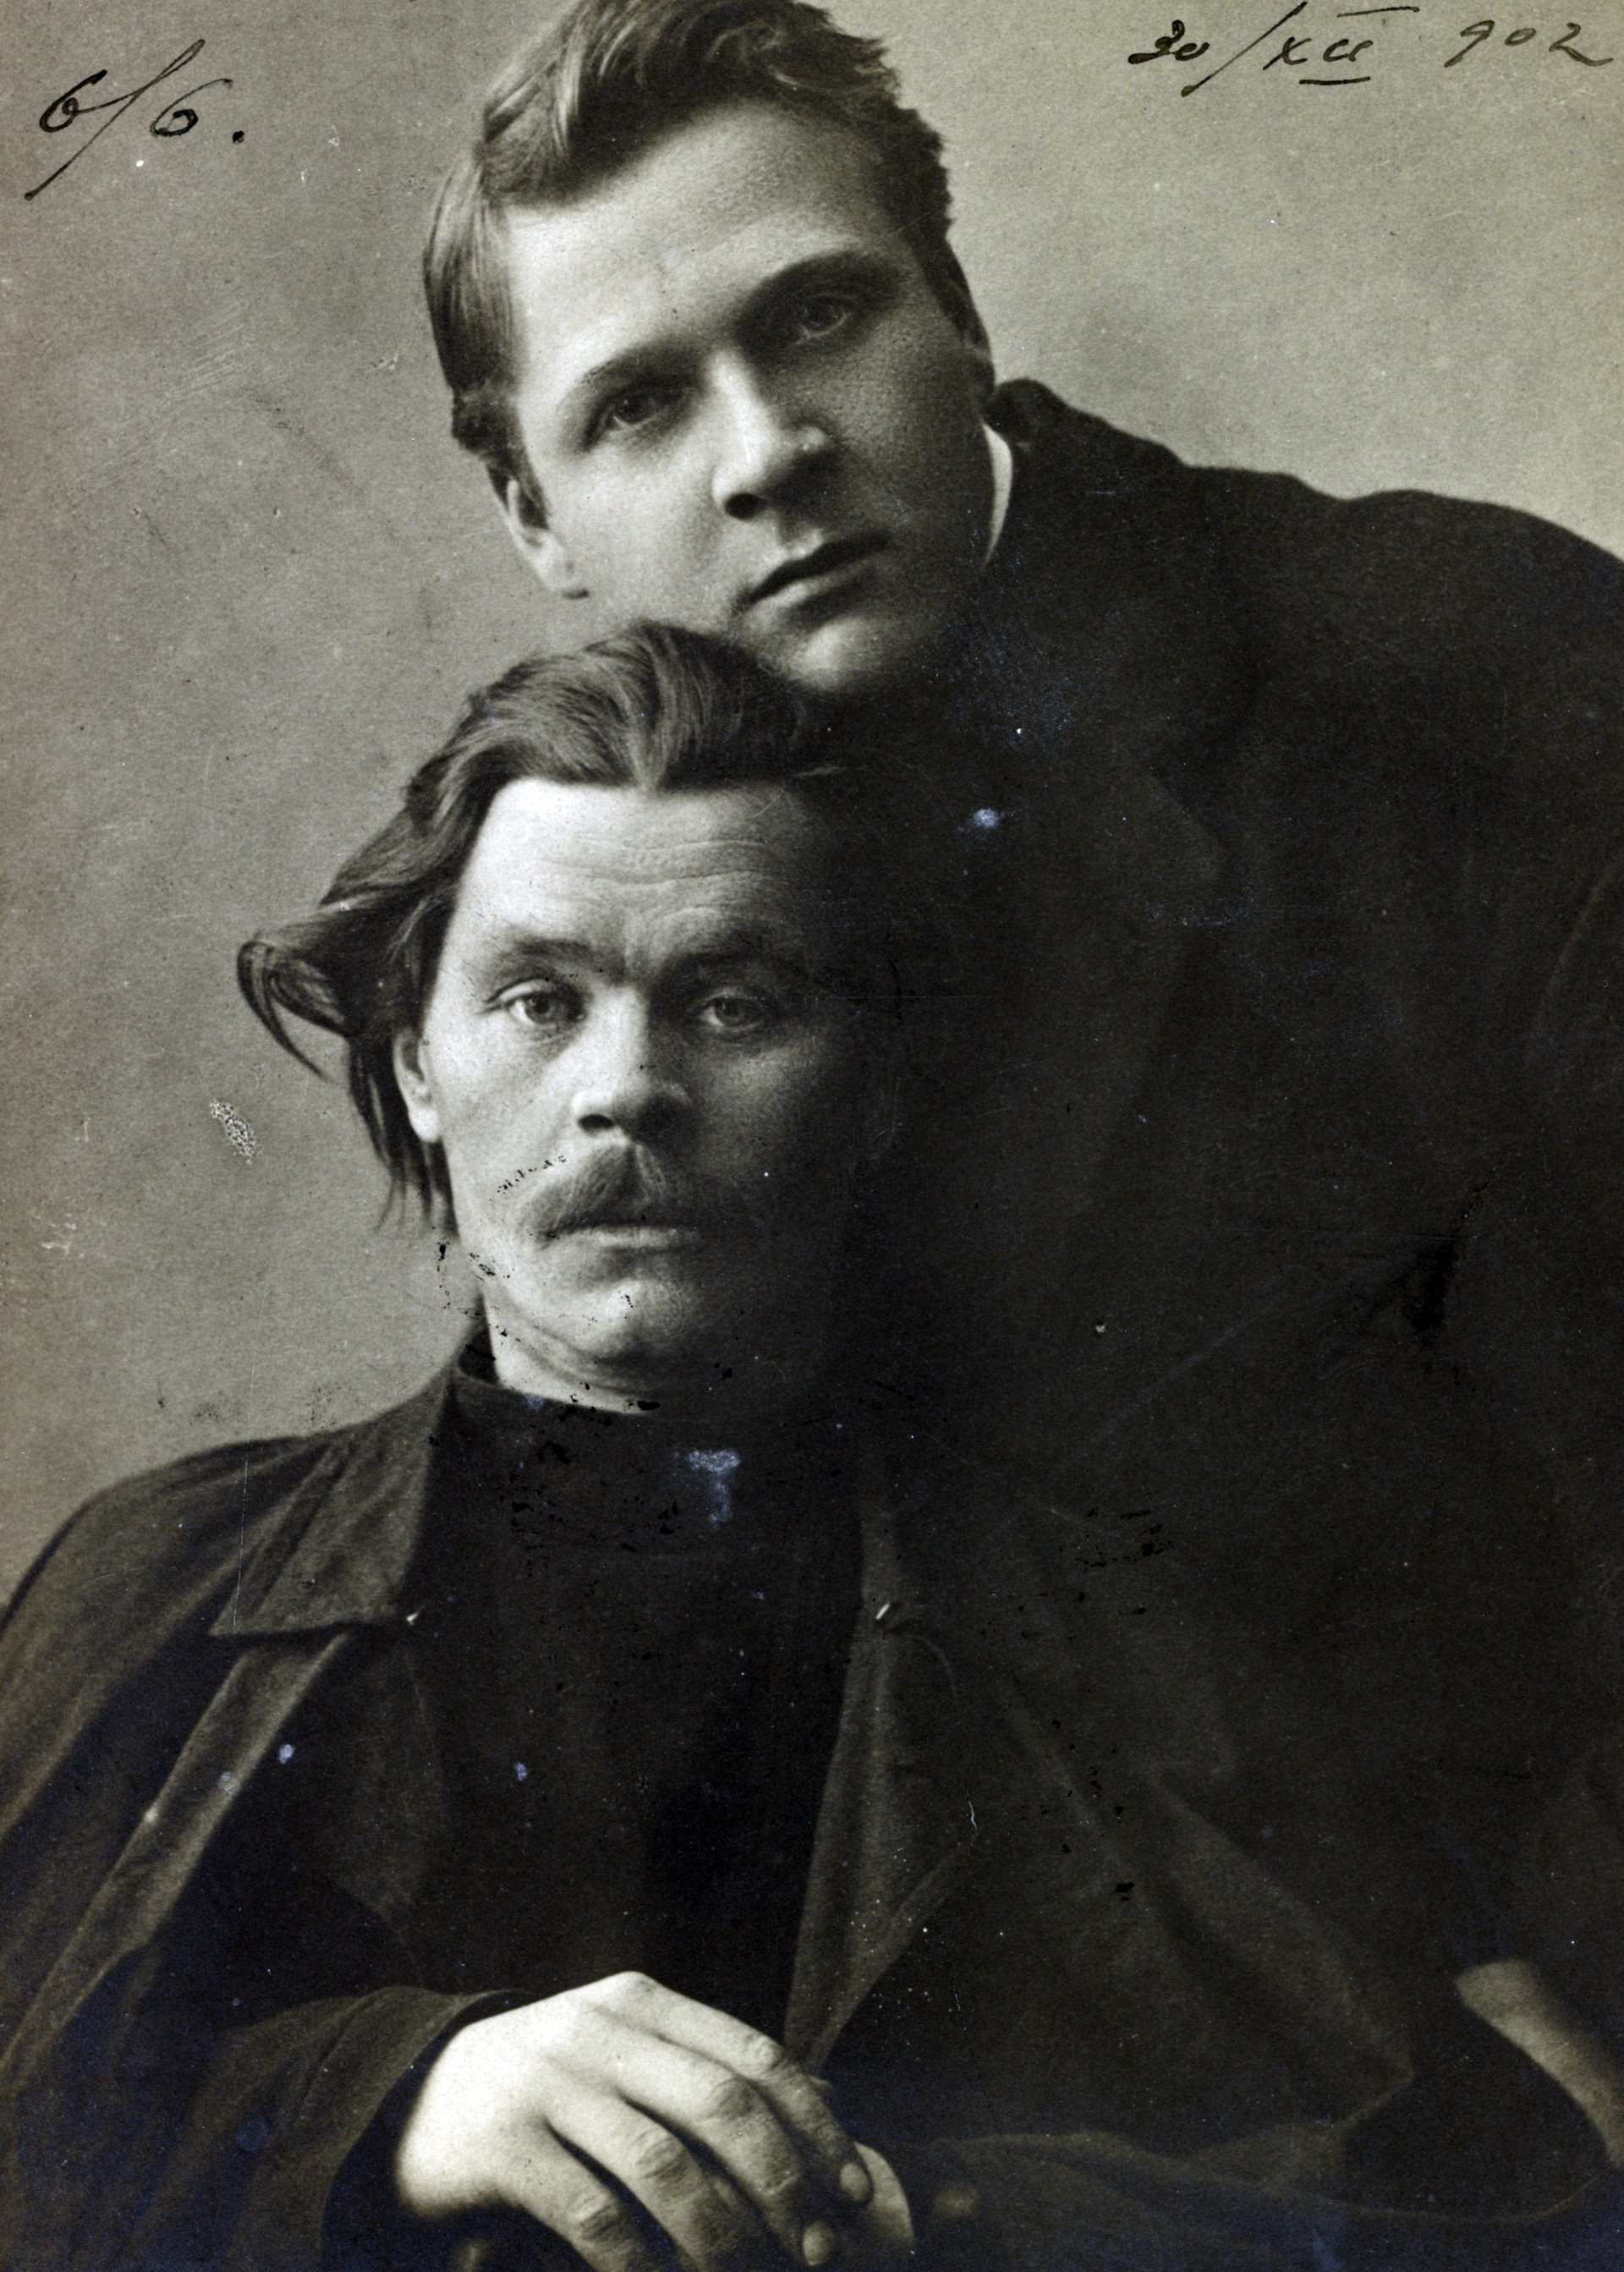 In 1920 Wells met both men that are in that picture from 1901: writer Maxim Gorky (sitting) and singer Feodor Chaliapin